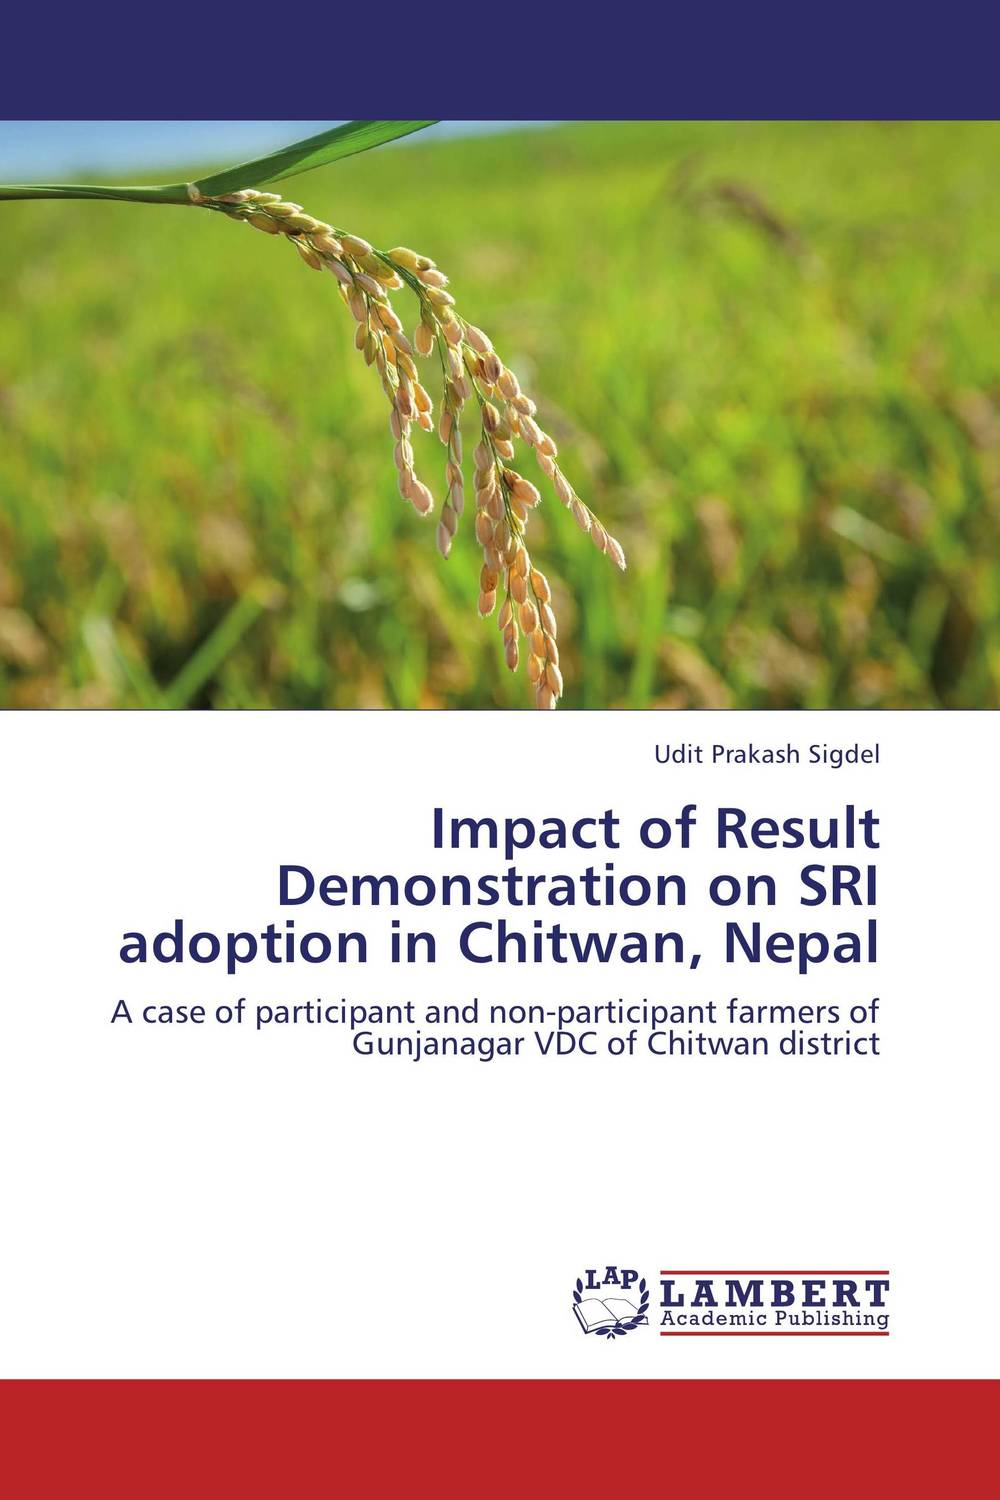 Impact of Result Demonstration on SRI adoption in Chitwan, Nepal swarna ukwatta impact of female transnational migration on families in sri lanka